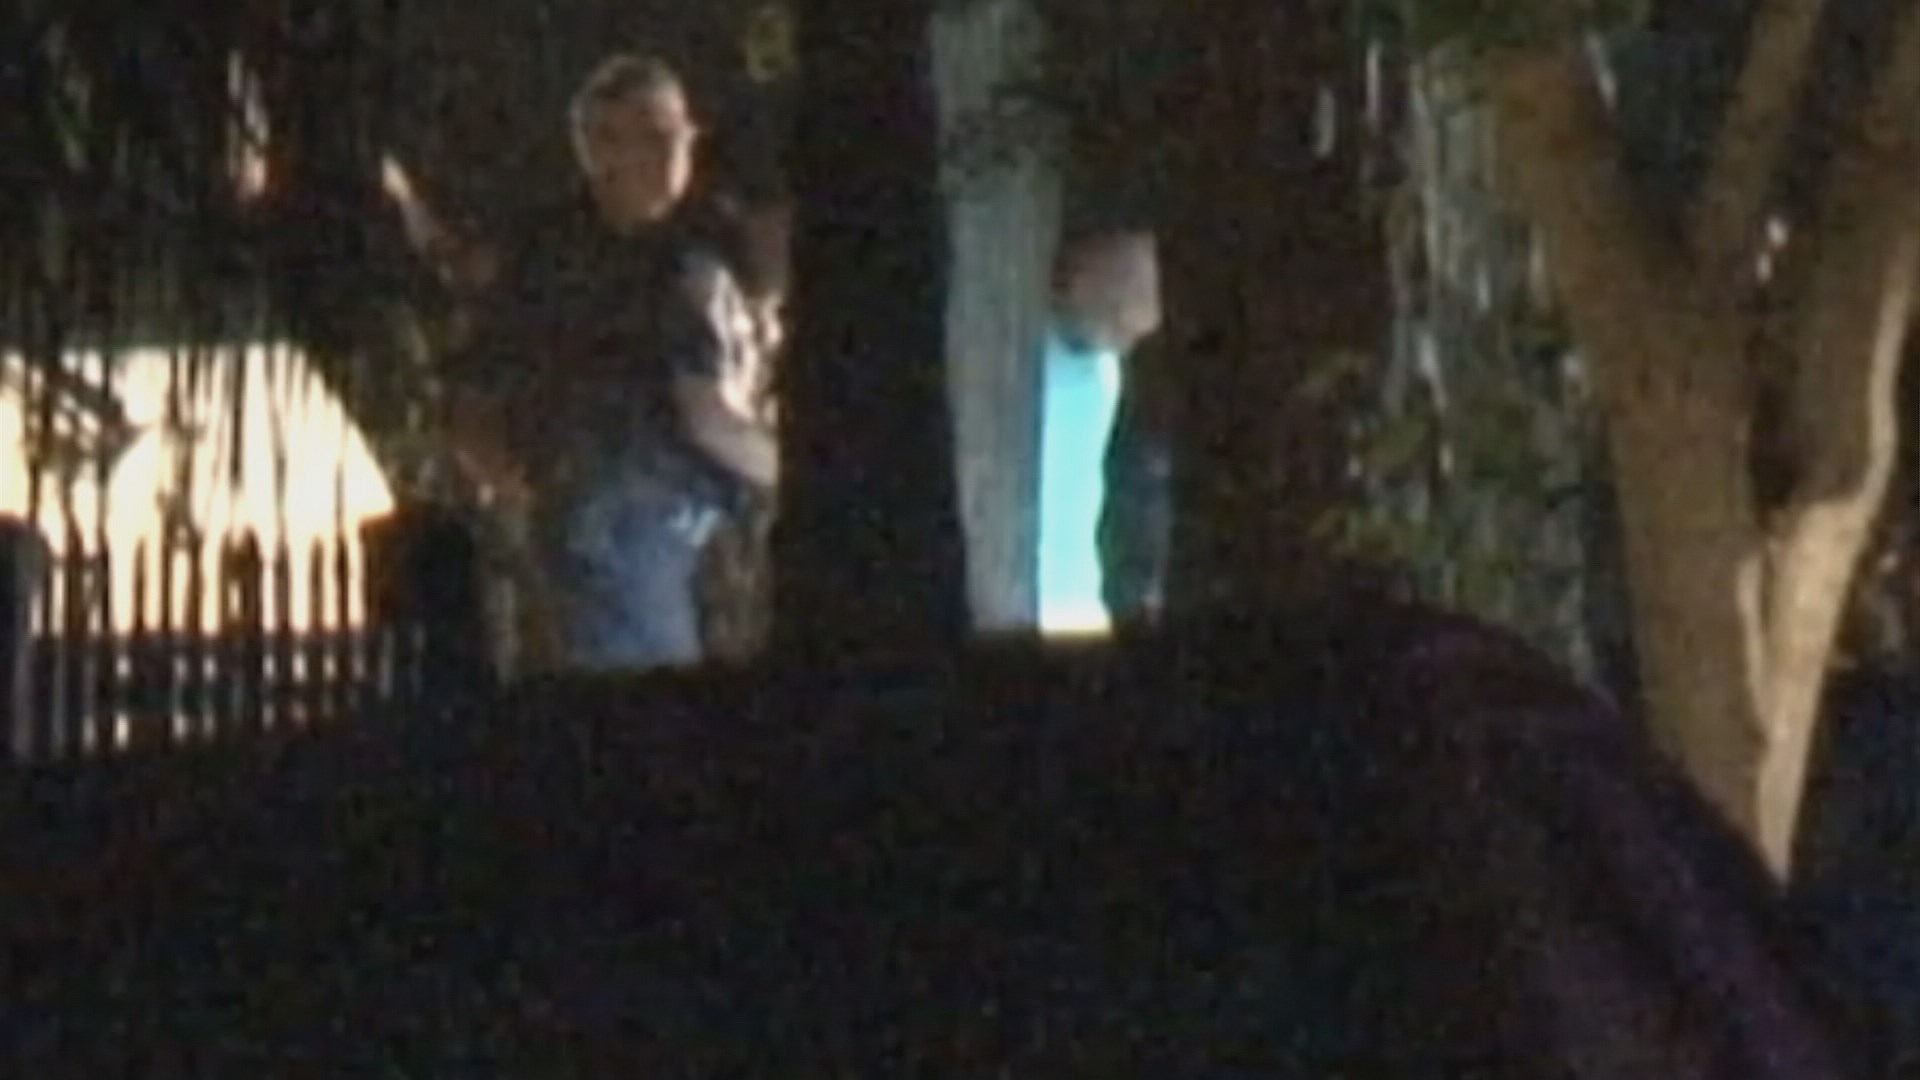 man in custody after brief standoff in channelview